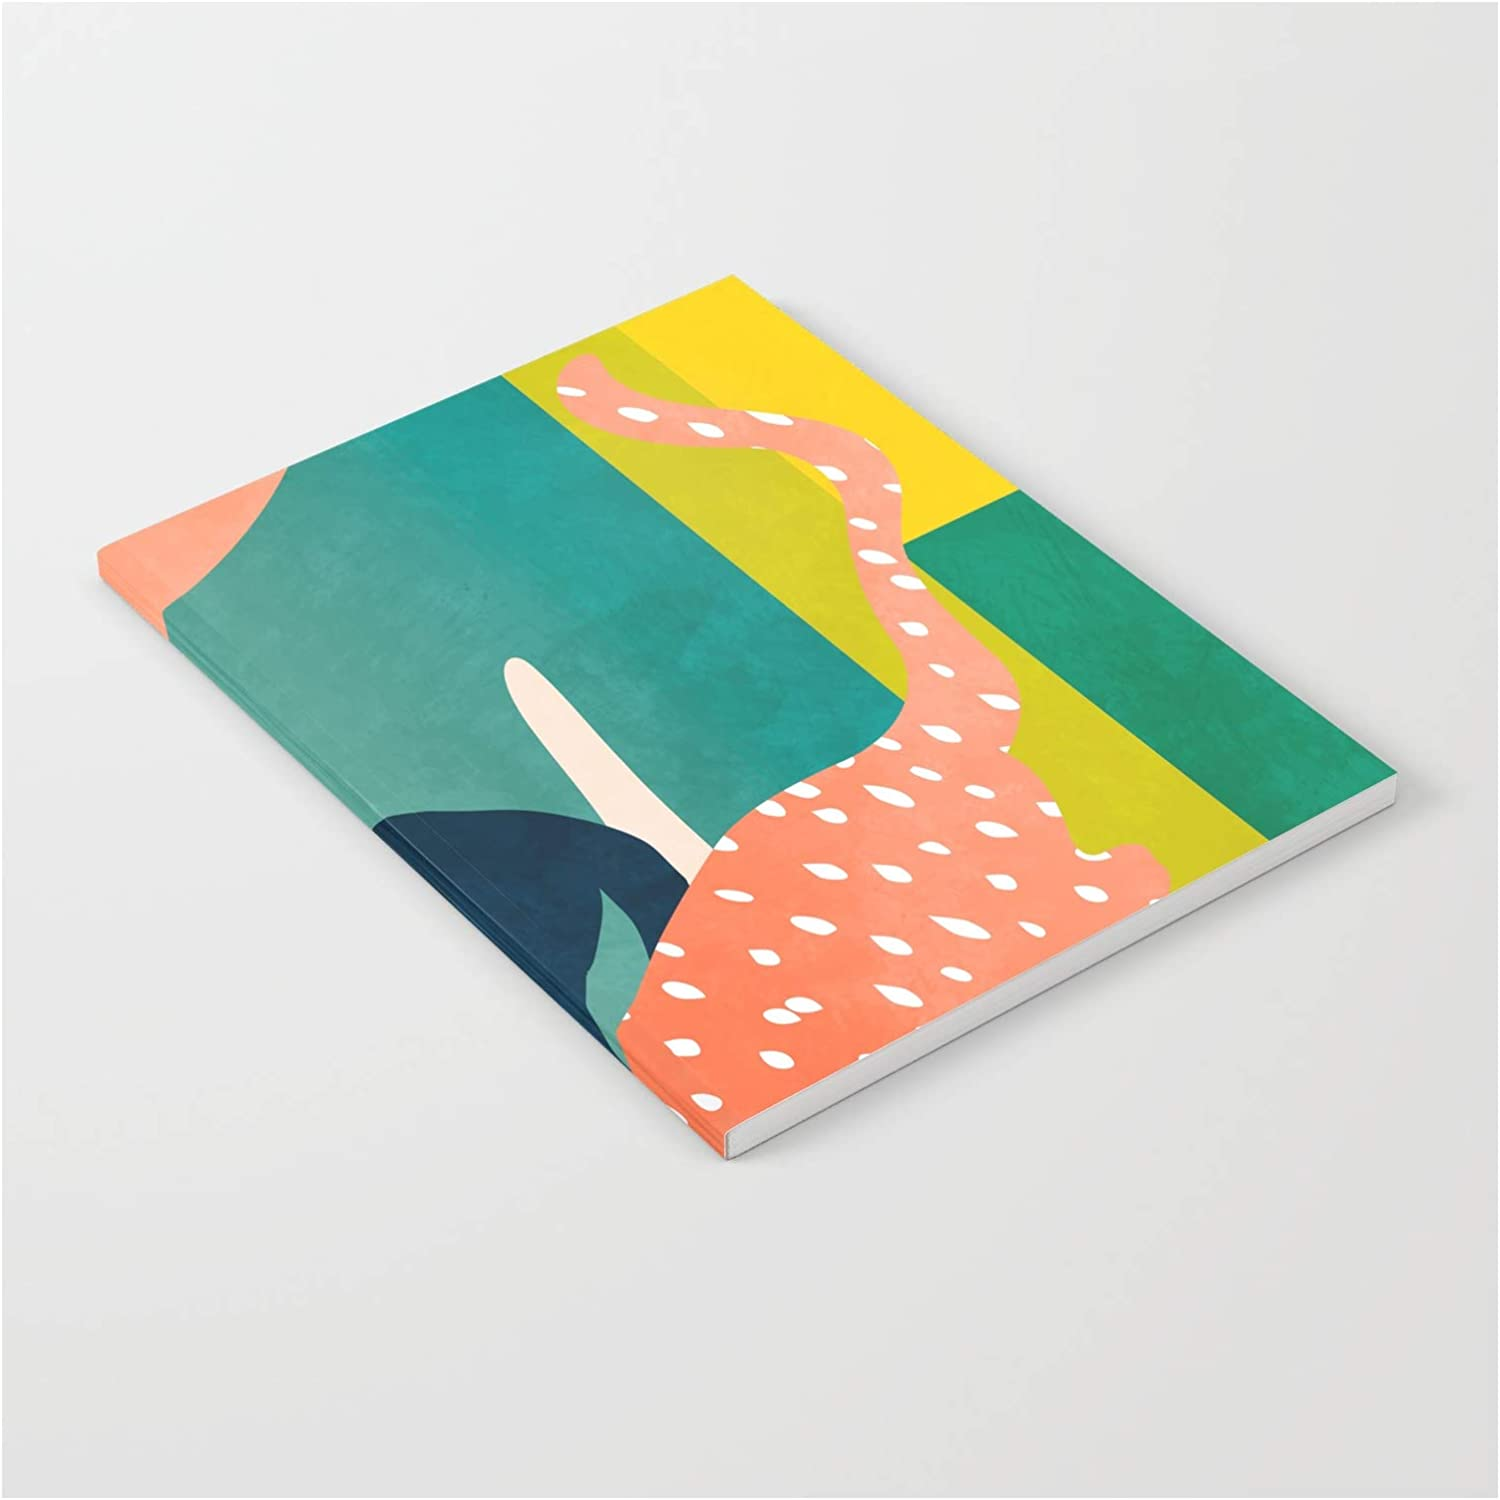 Tropical Cats by Ana Rut San Francisco Mall Bre Fine Art Online limited product Notebook Set 3 - of on 6